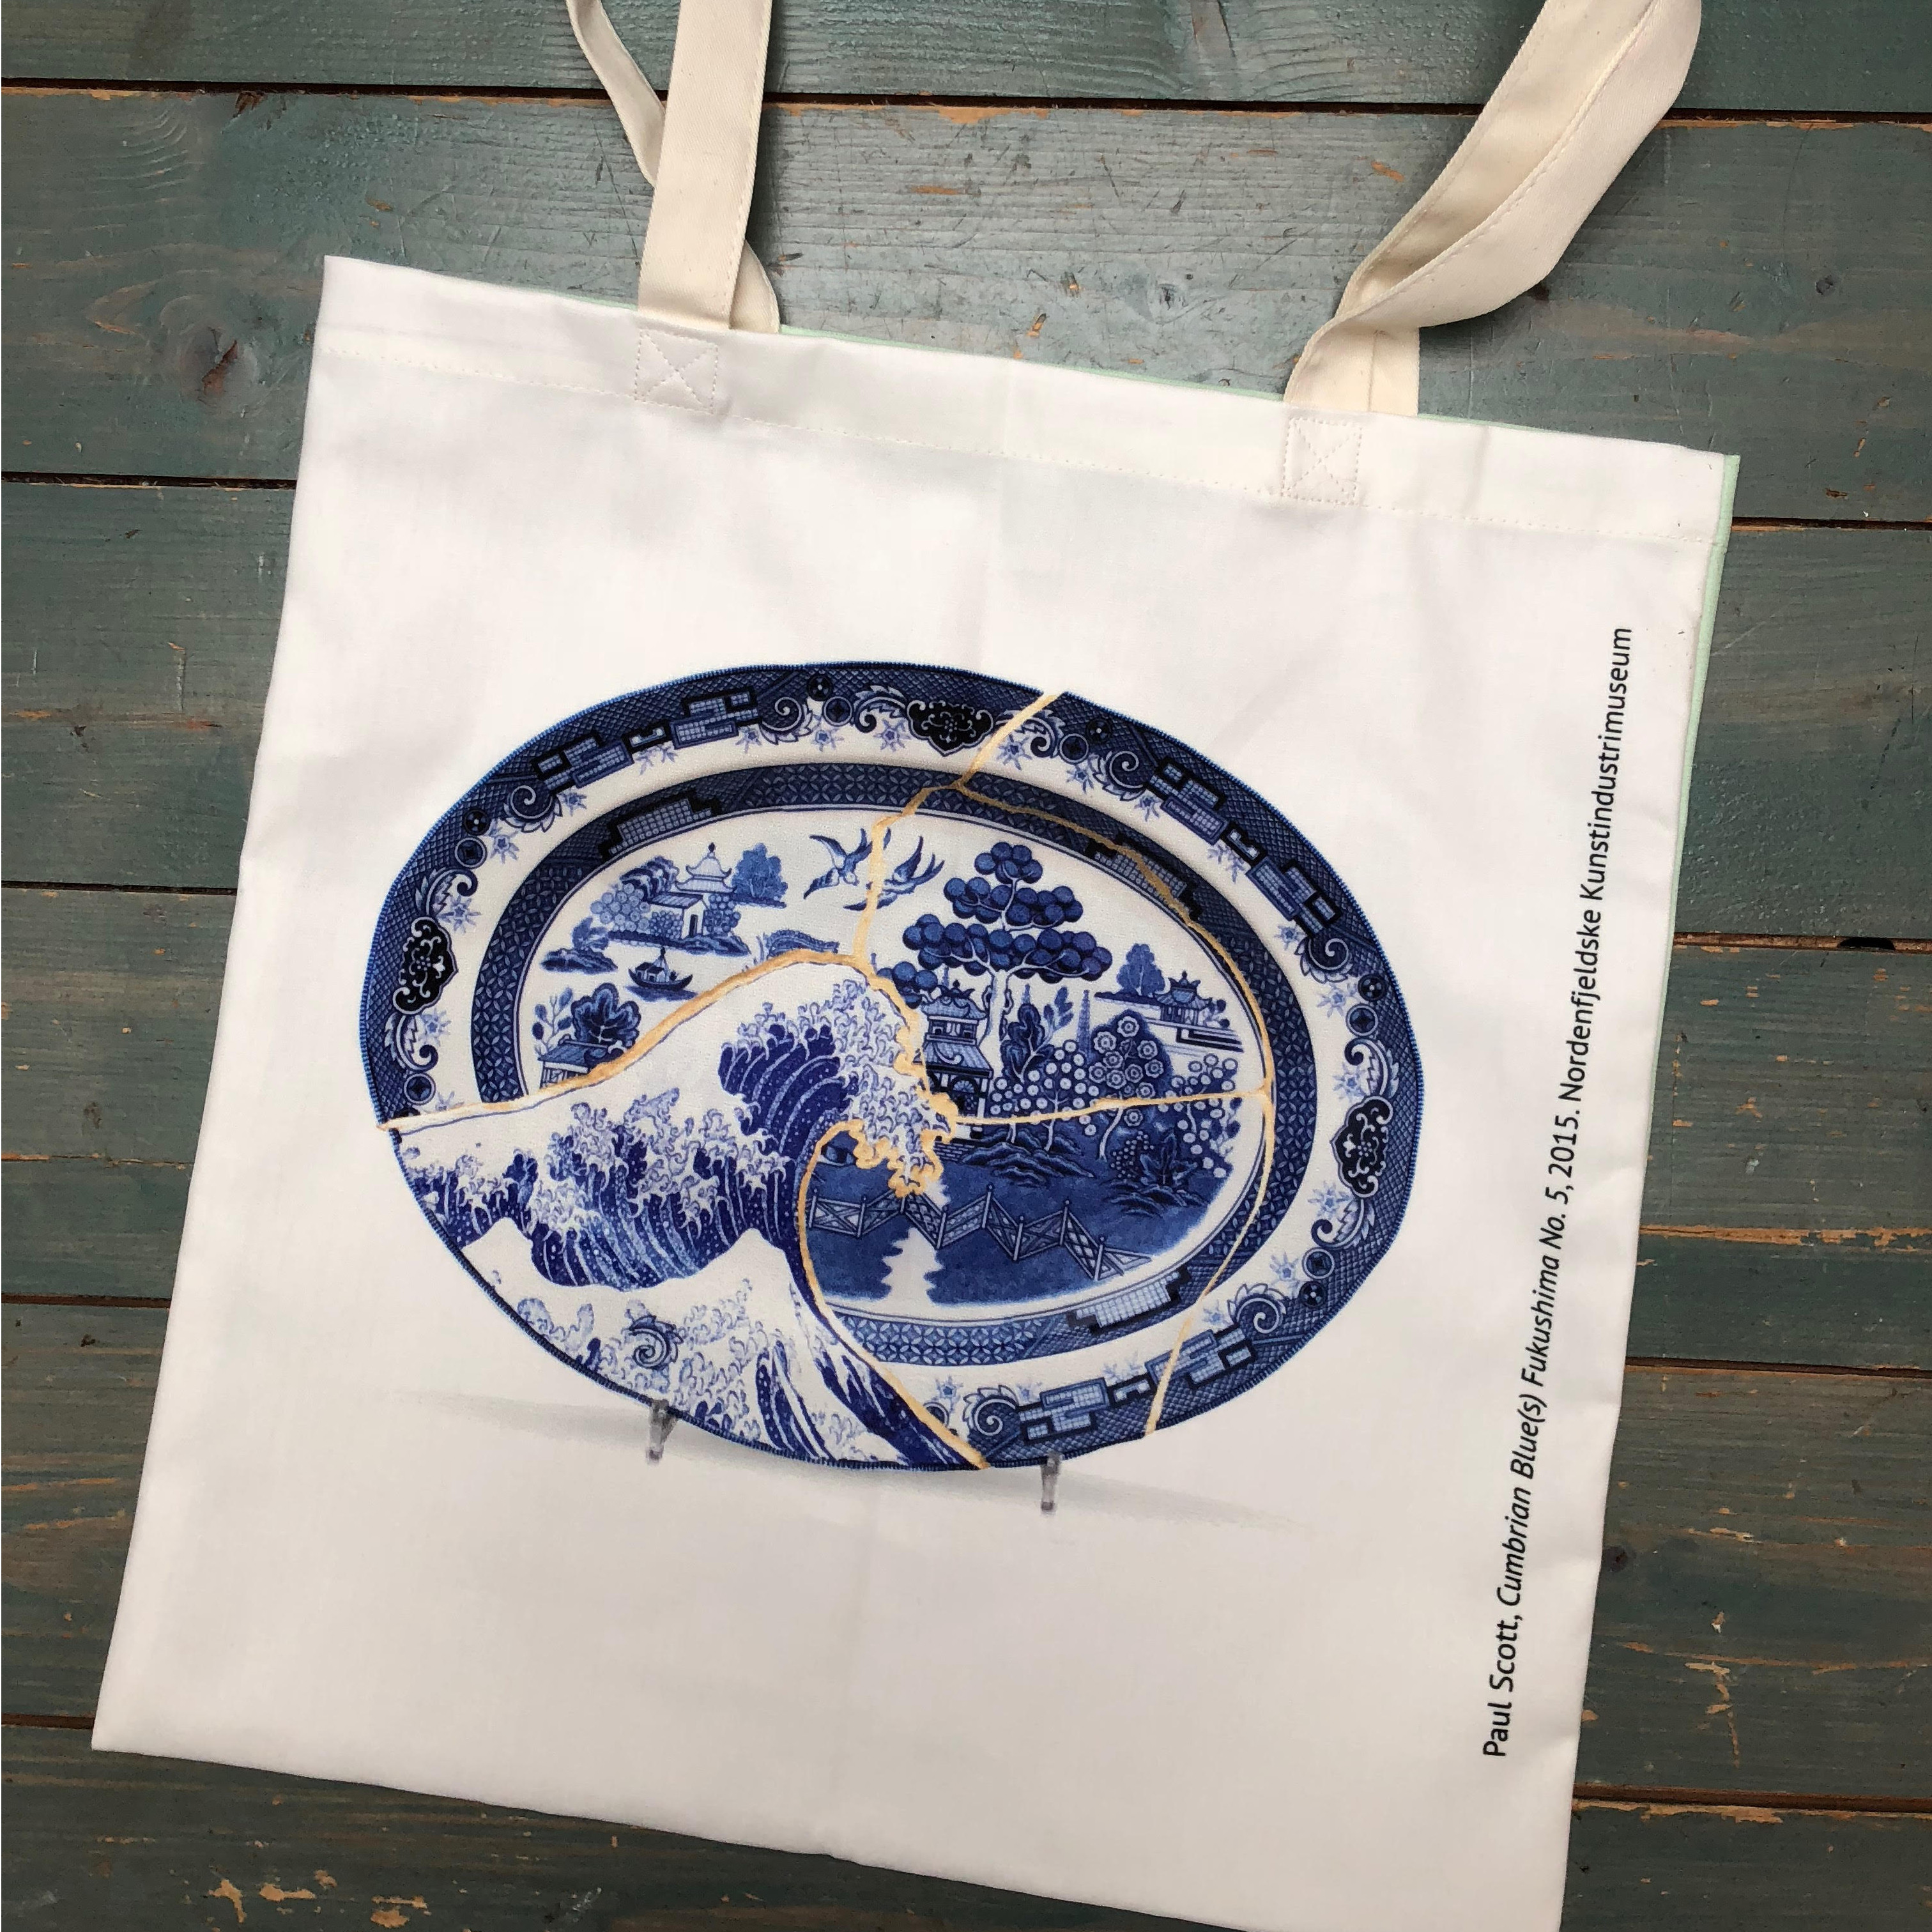 NEWS: Fukushima No. 5 on Design Museum of Trondheim Limited Tote